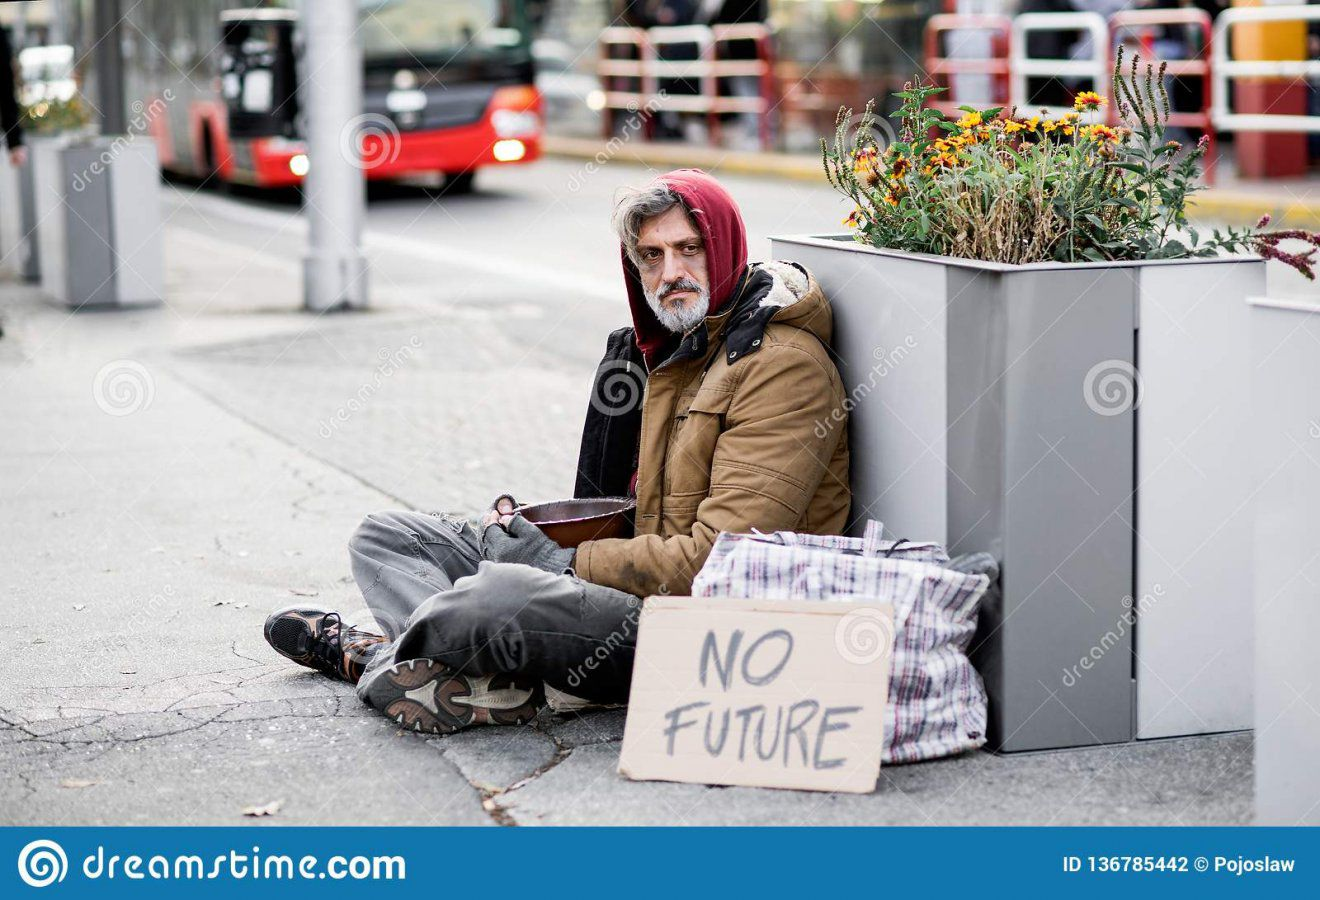 homeless-beggar-man-sitting-outdoors-city-asking-money-donation-carboard-sign-136785442.jpg